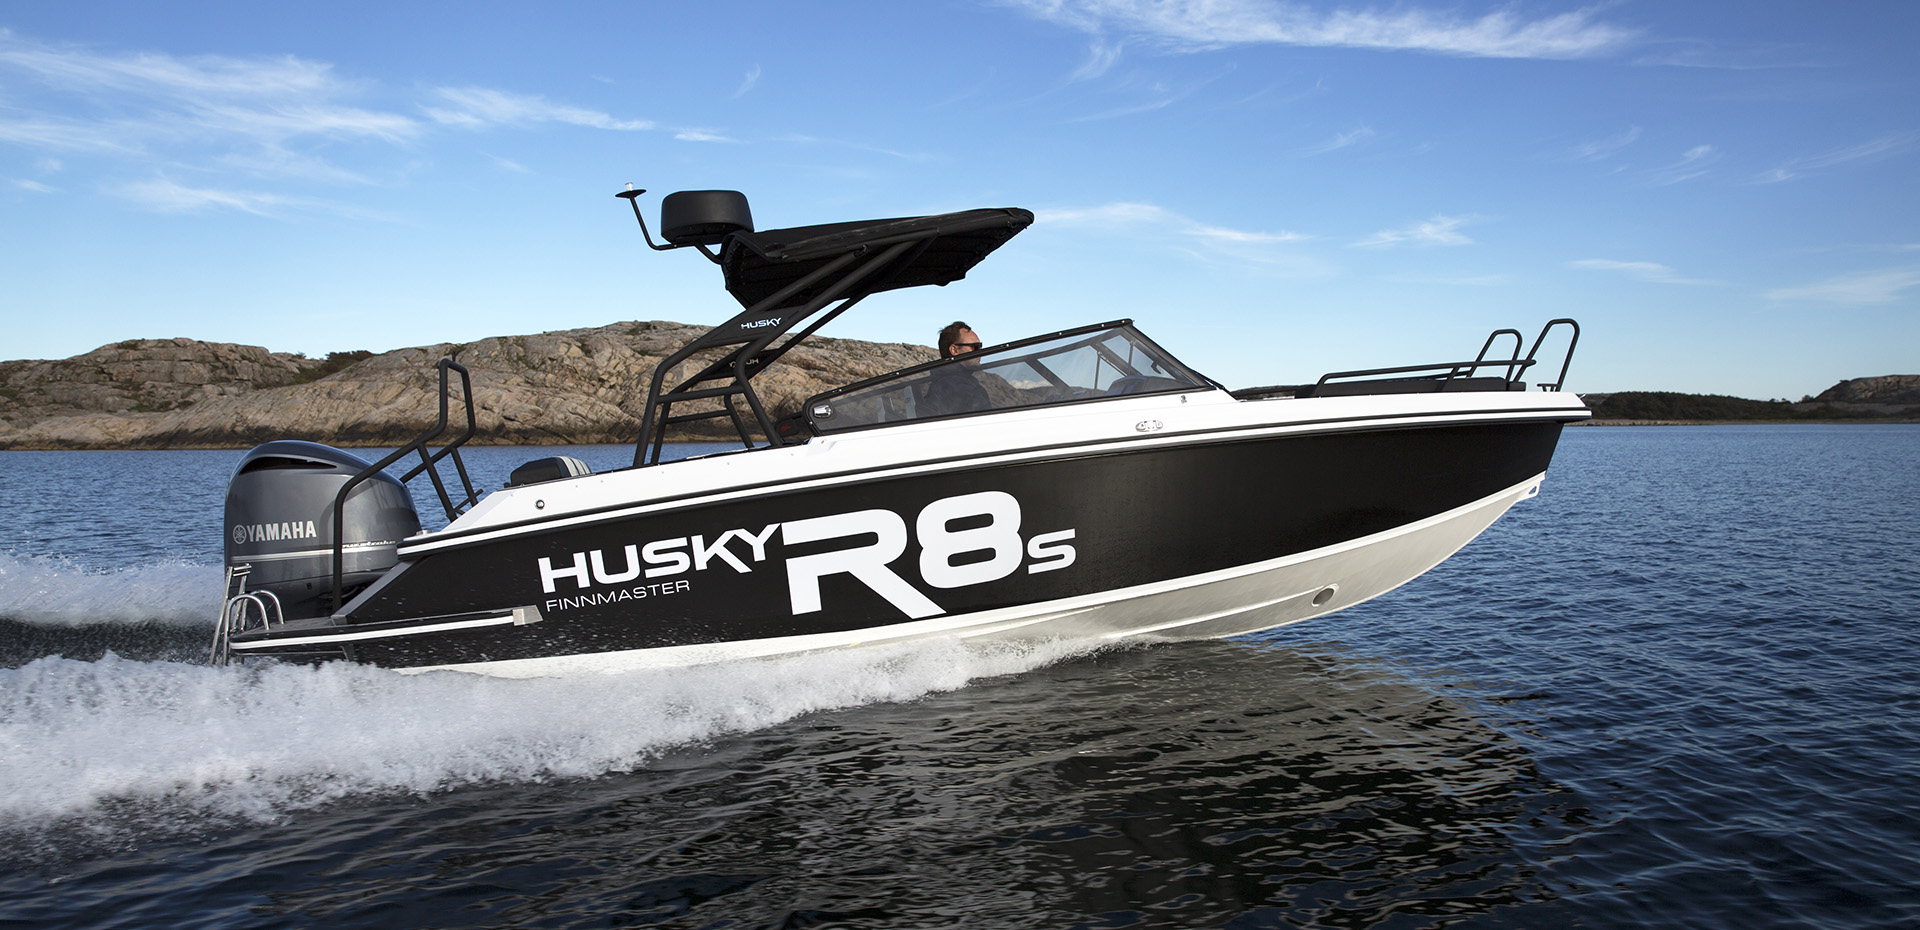 Aluminium Boat Finnmaster Husky R8s - The eye catcher at sea.